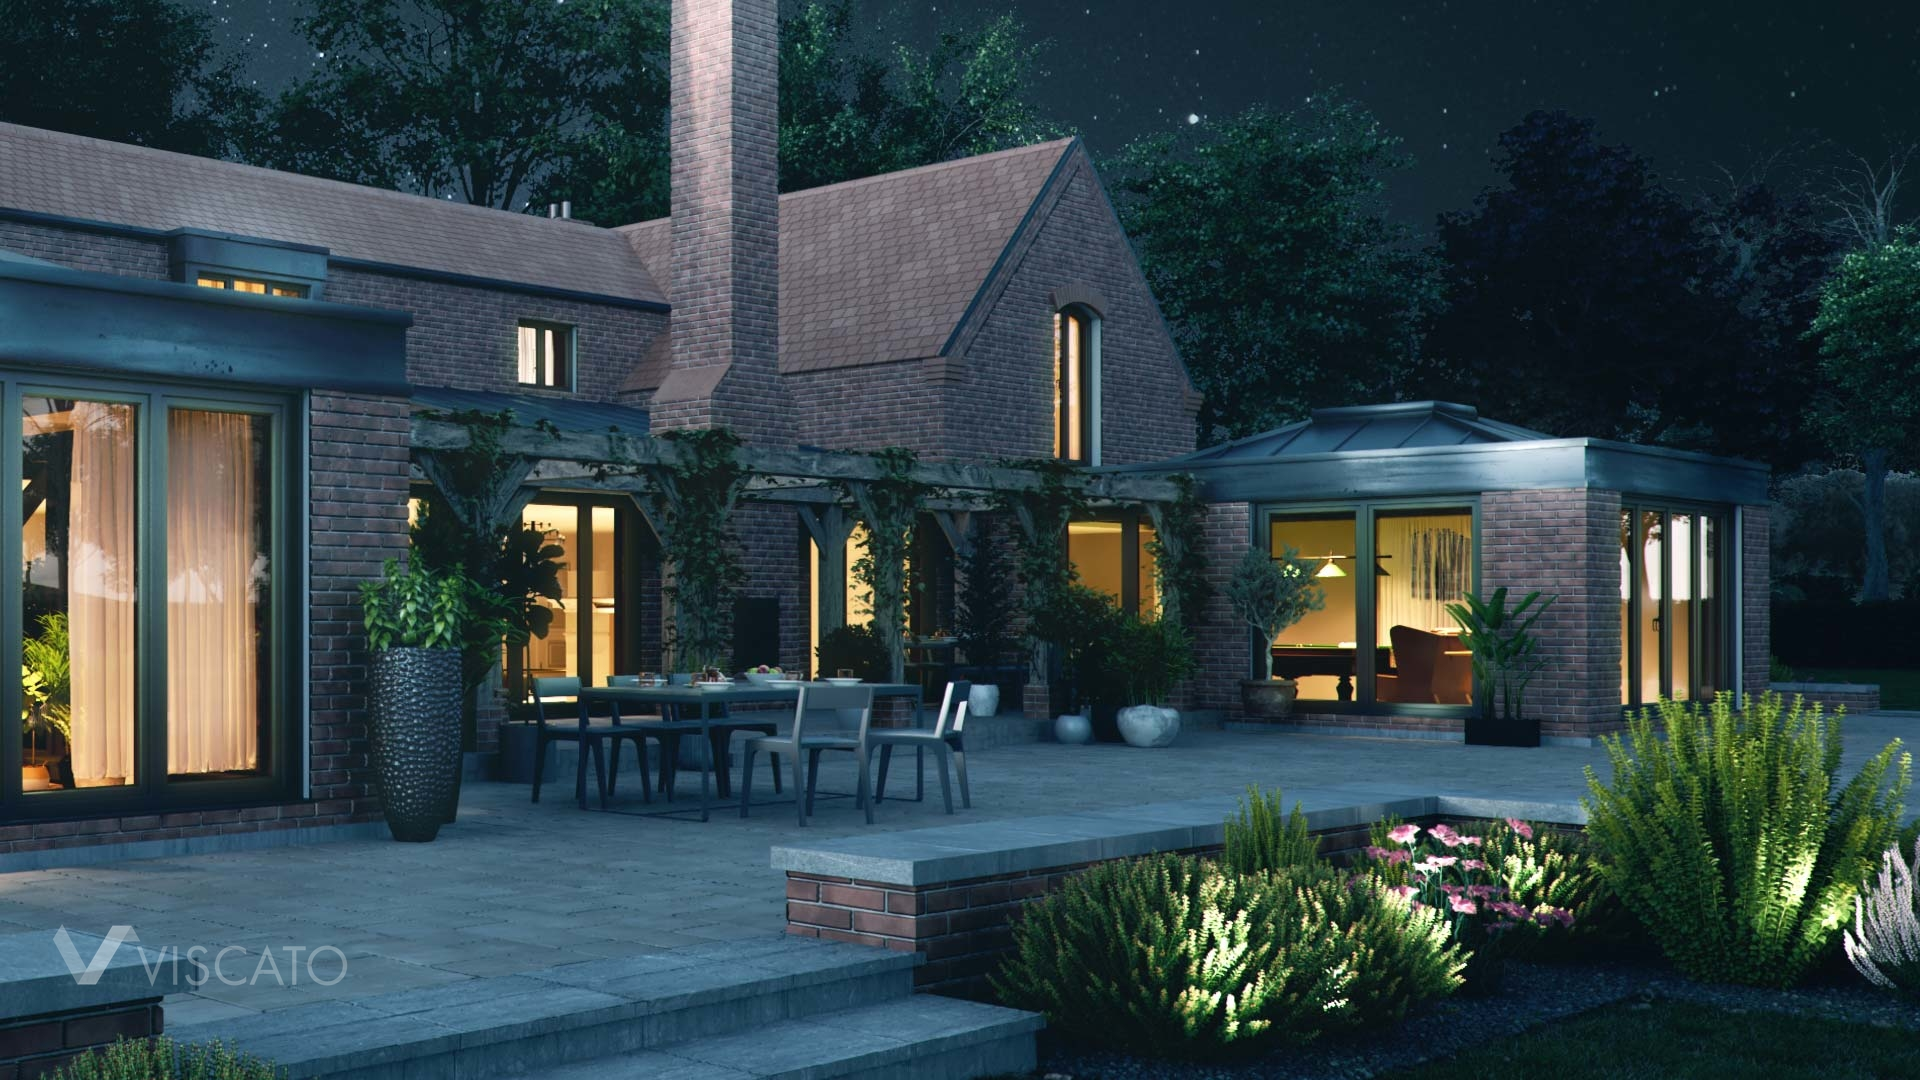 3D rendering of a detached house in England, 3ds Max